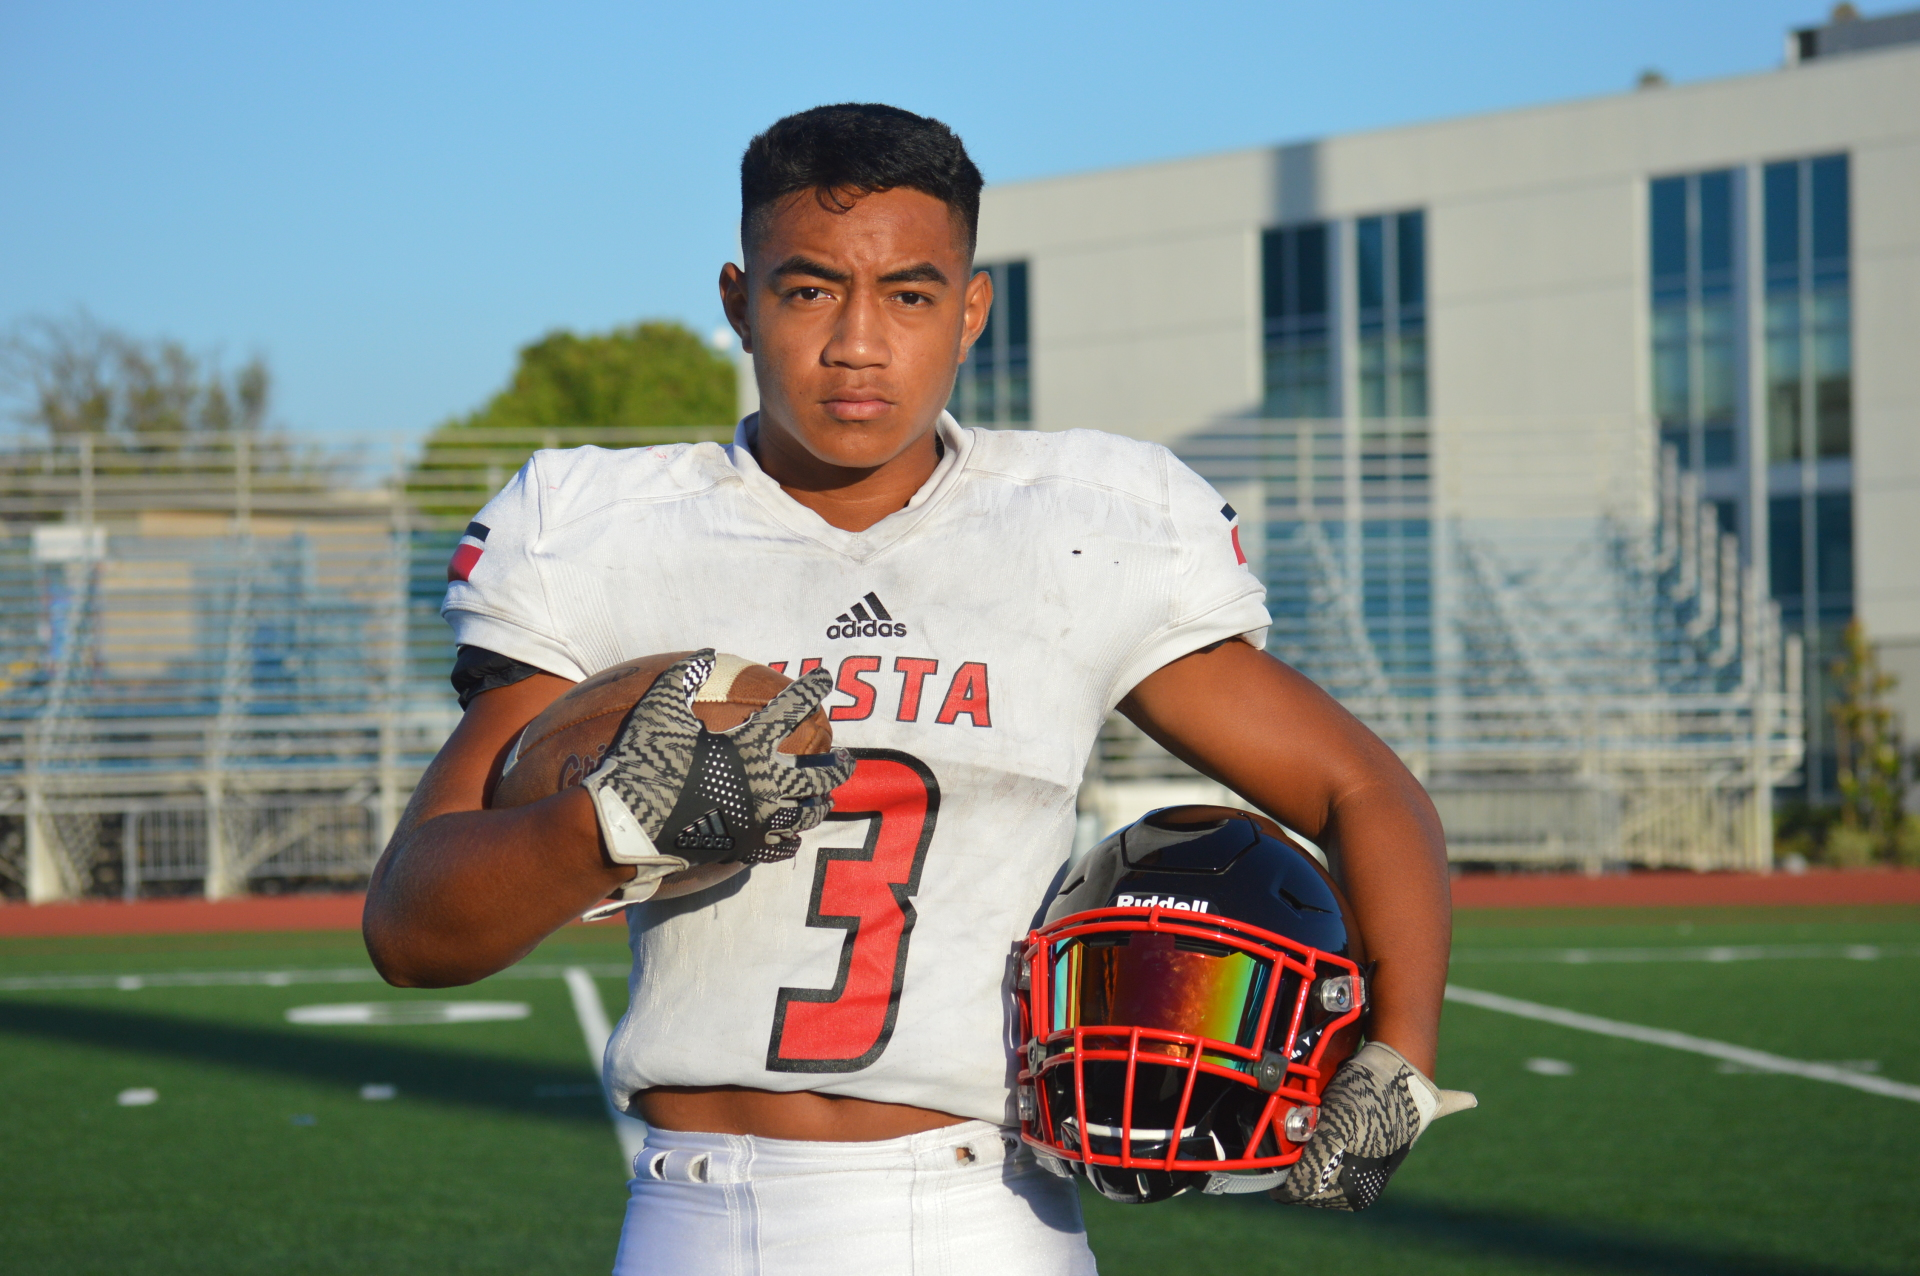 Vista High School - Athlete Desmond Taua